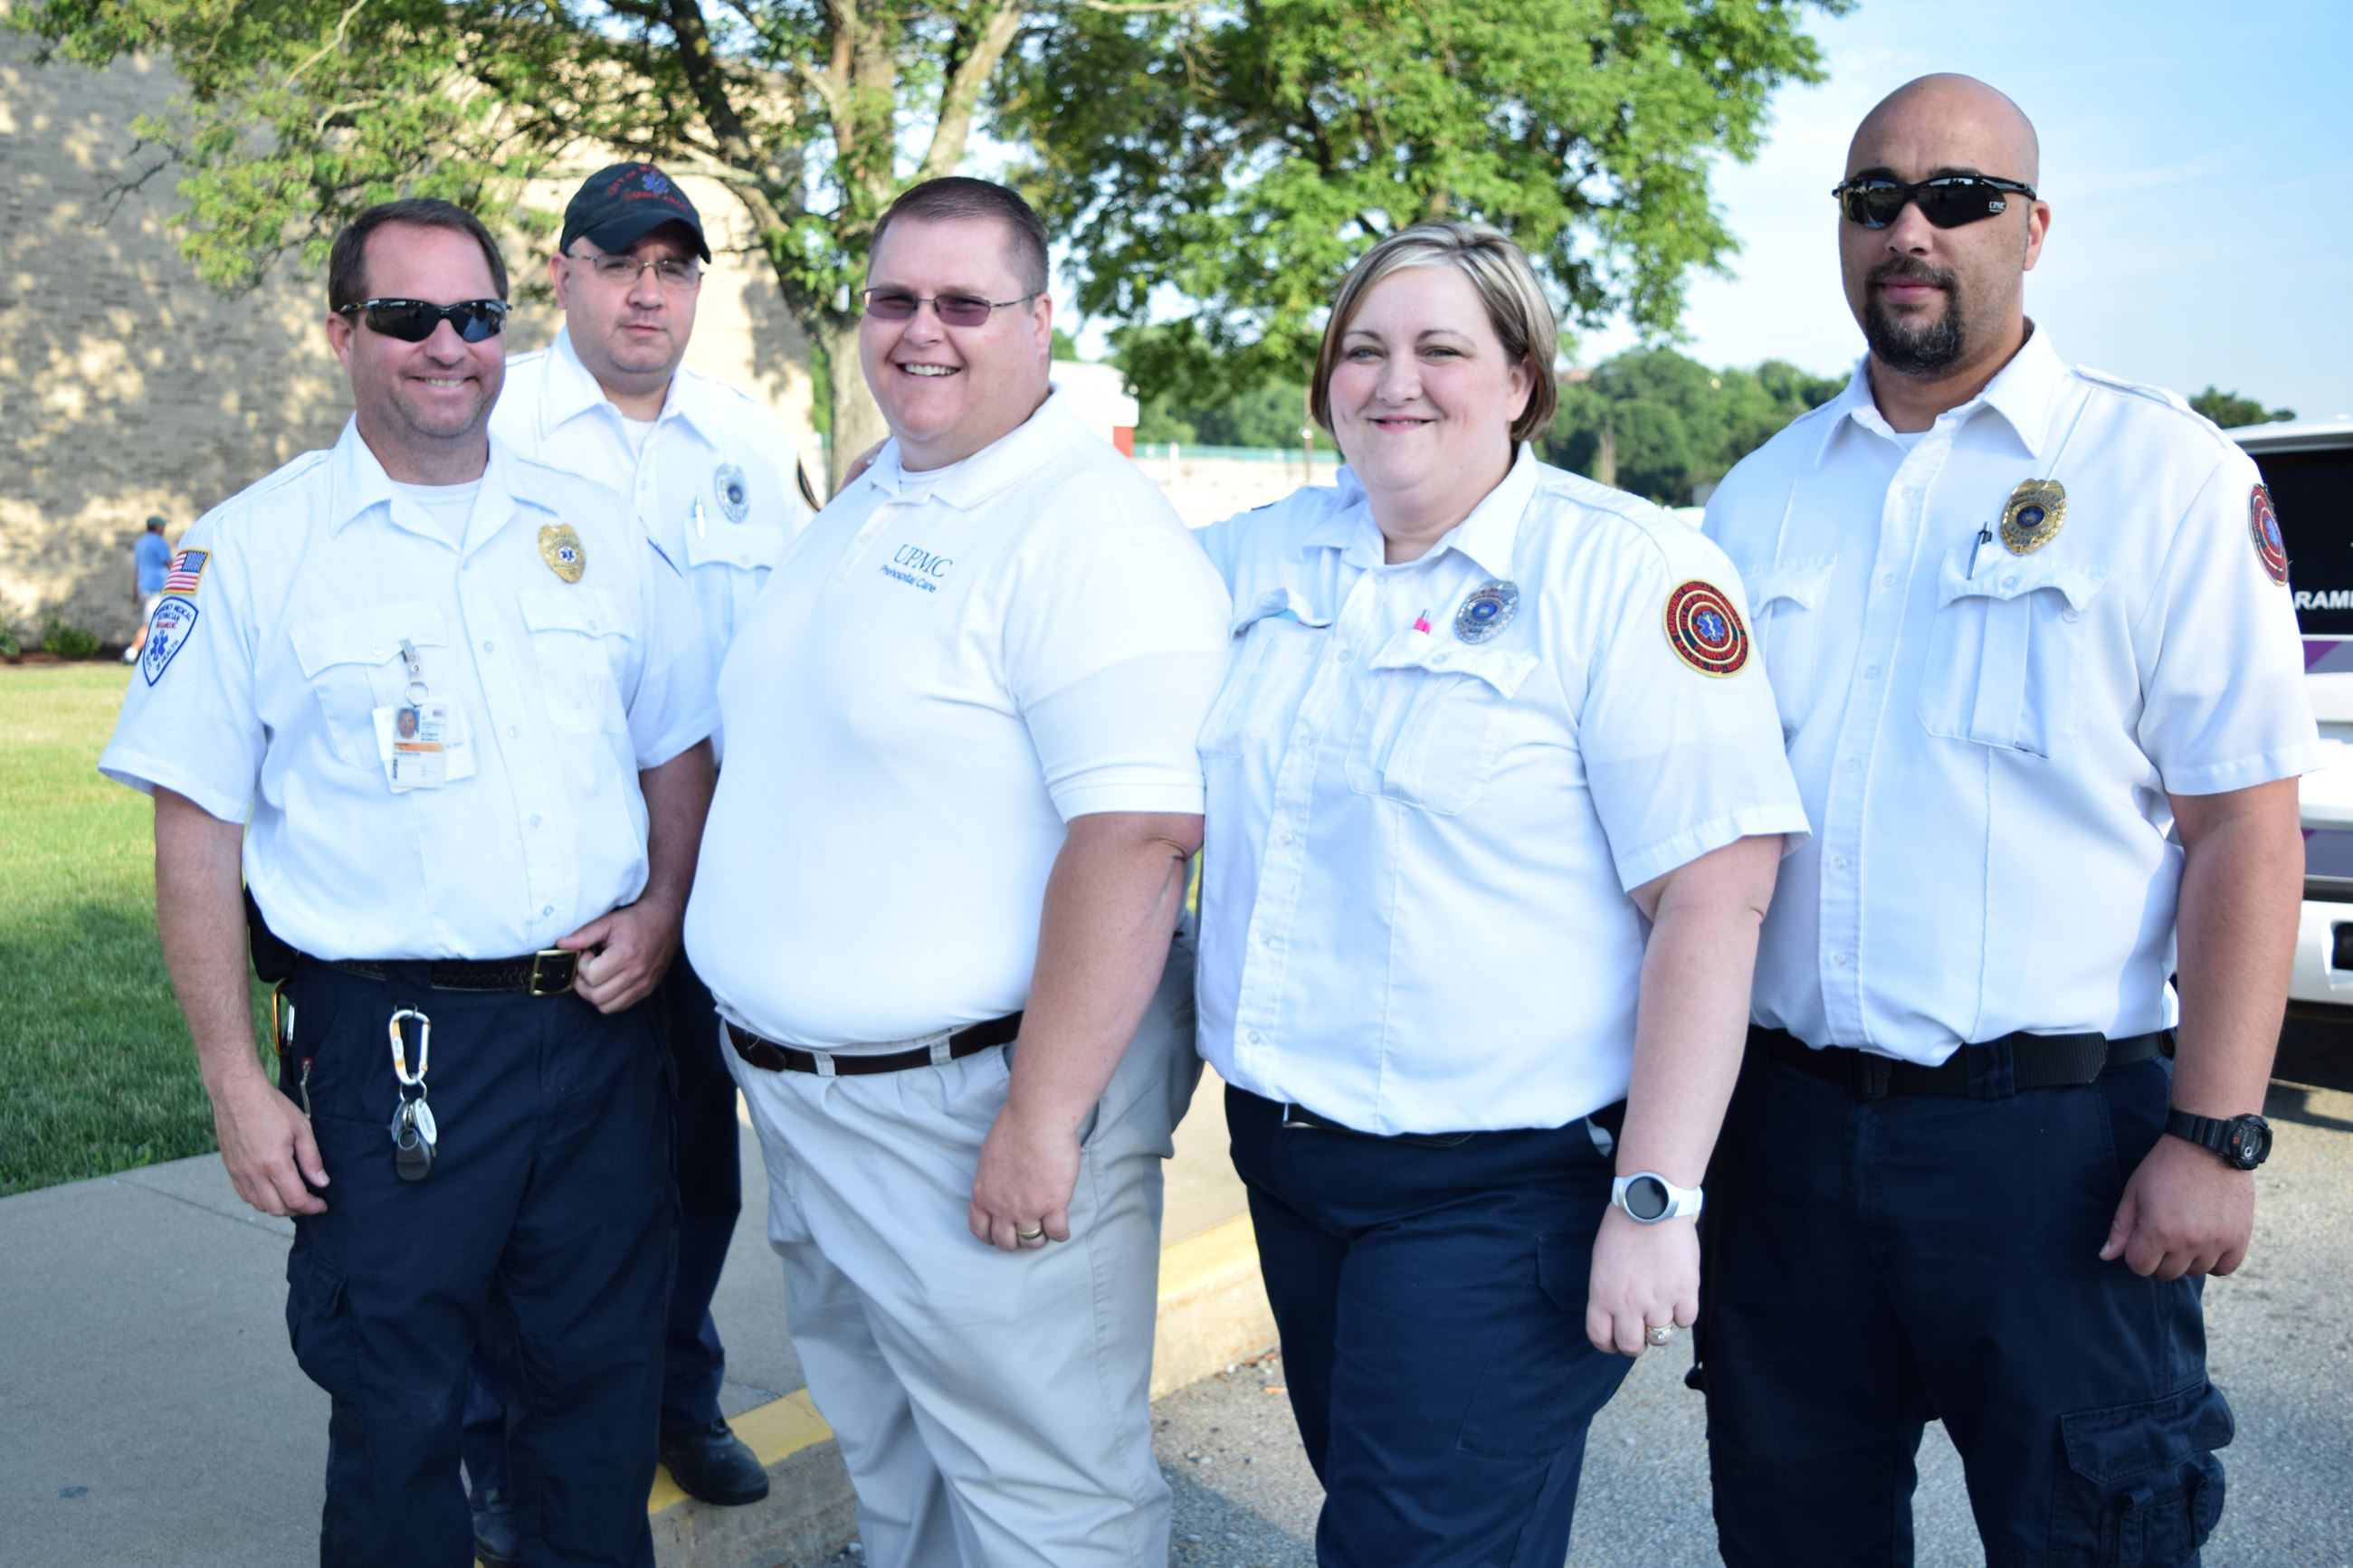 McKeesport Ambulance Rescue Service Employees